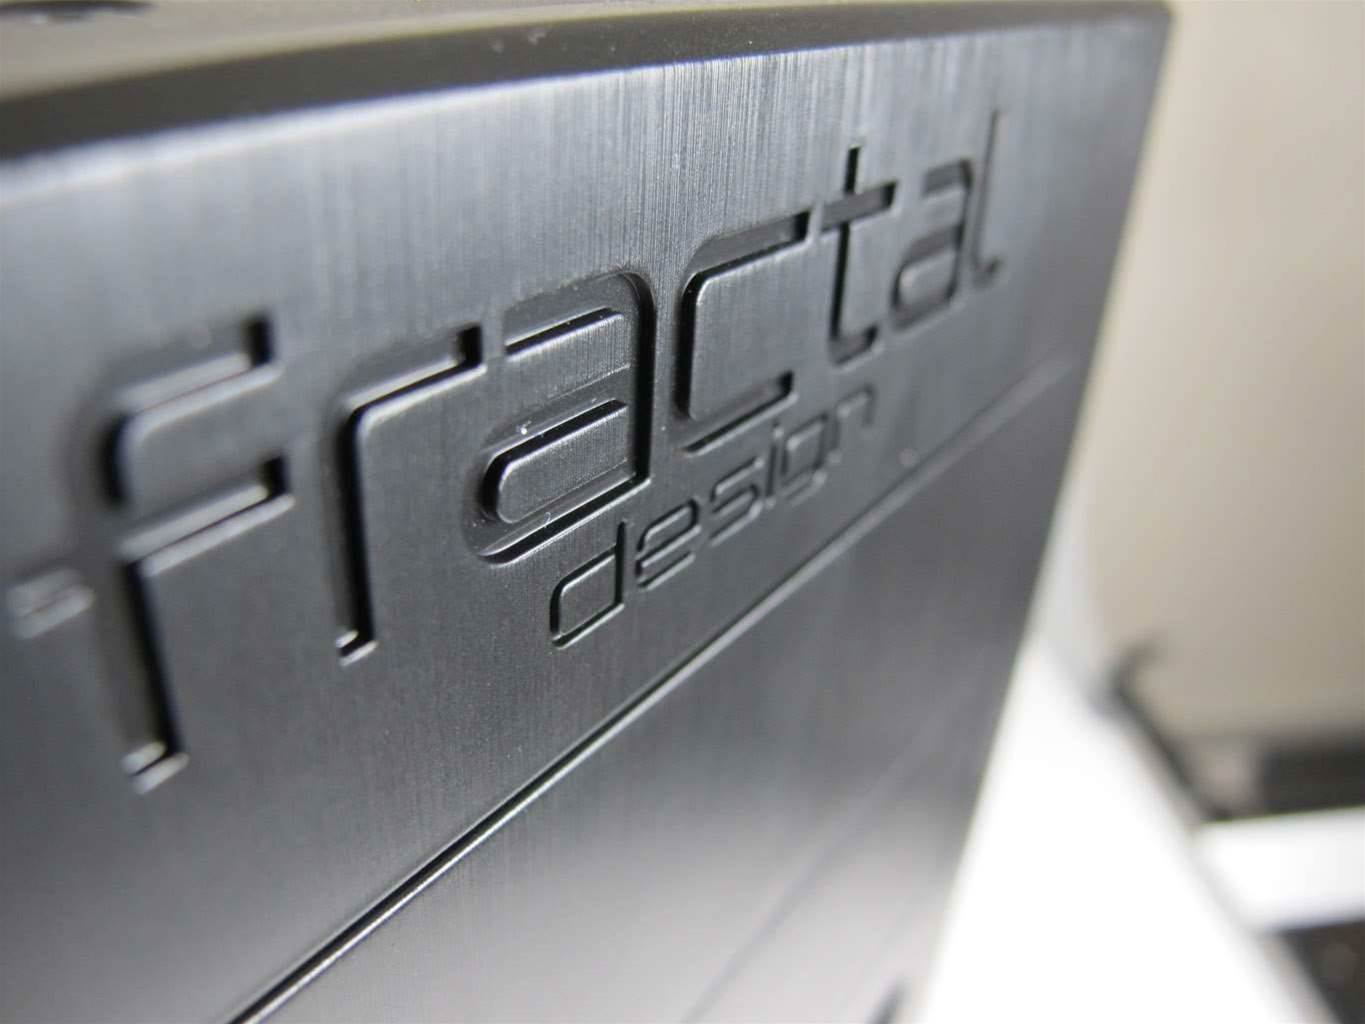 Fractal Design's Arc case is a cool customer